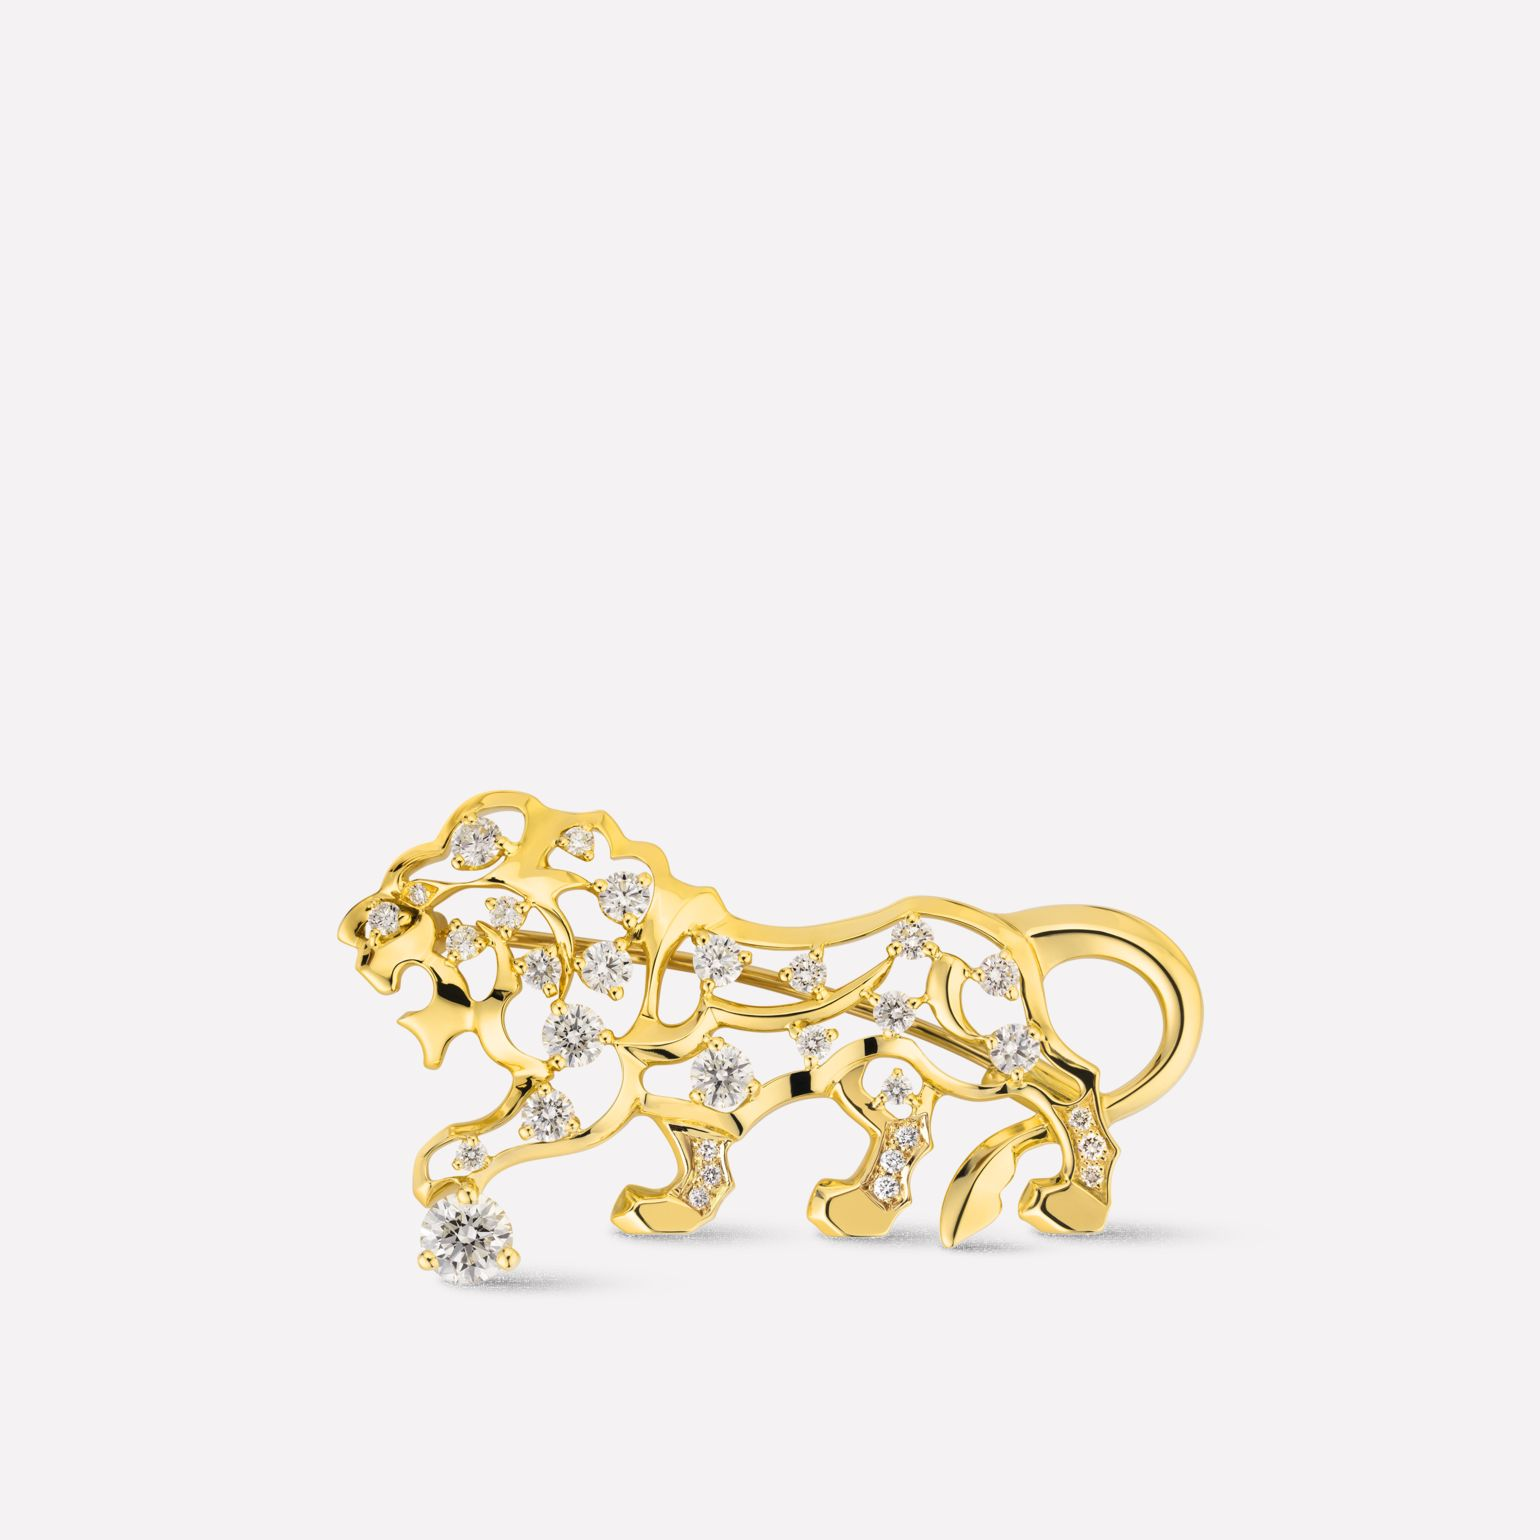 Sous le Signe du Lion brooch 18K yellow gold, diamonds